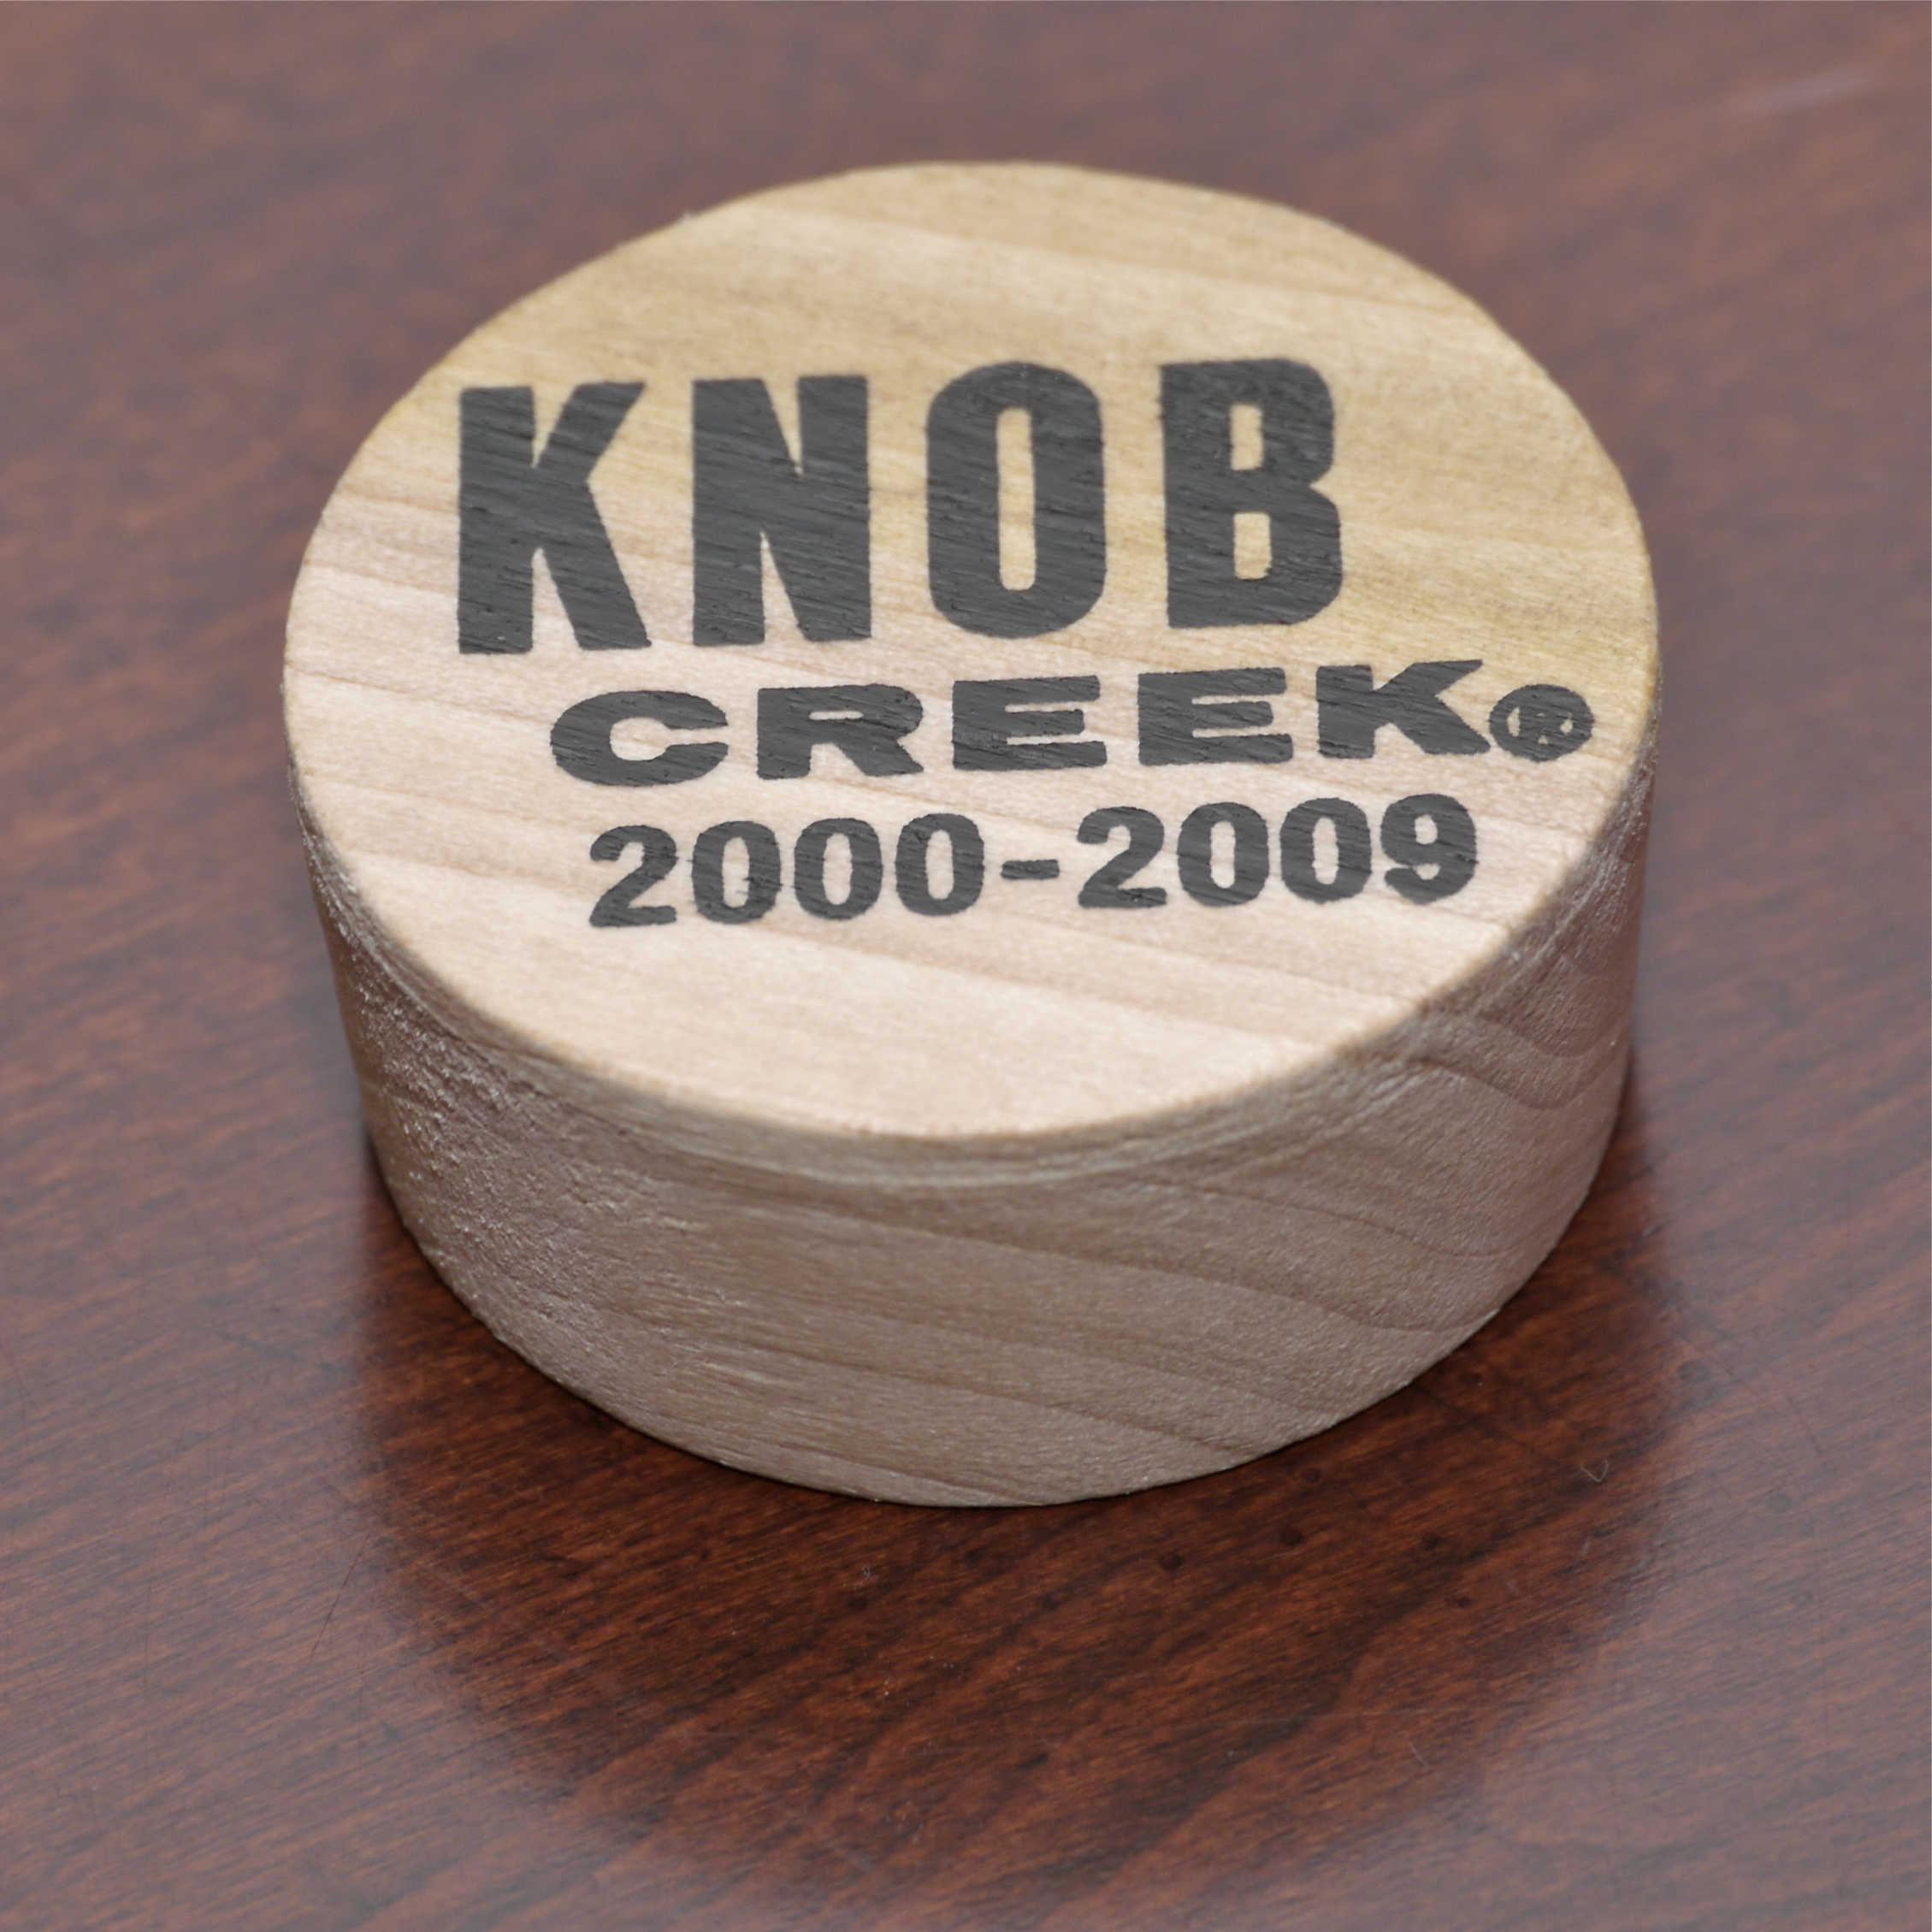 Knob Creek commemorative barrel bung